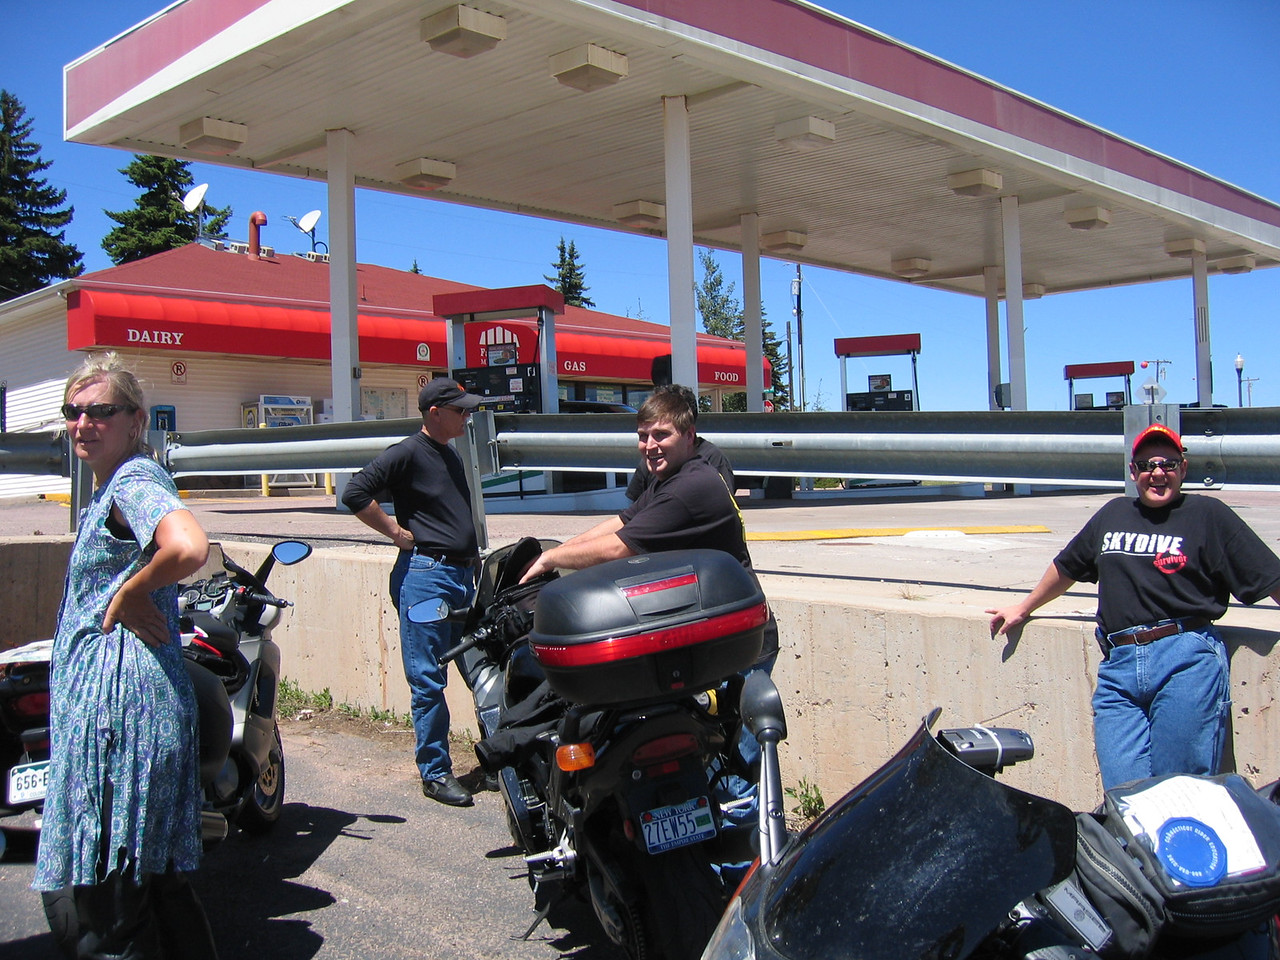 Here we find the Sport-Touring.NET group resting after a well earned meal.  From left to right:  Carolina?, Dave?, Justin, Bikerfish (hidden behind Justin), and Tabasco.  Sfarson's Ducati ST4s and Justin's Blackbird are also in the photo.